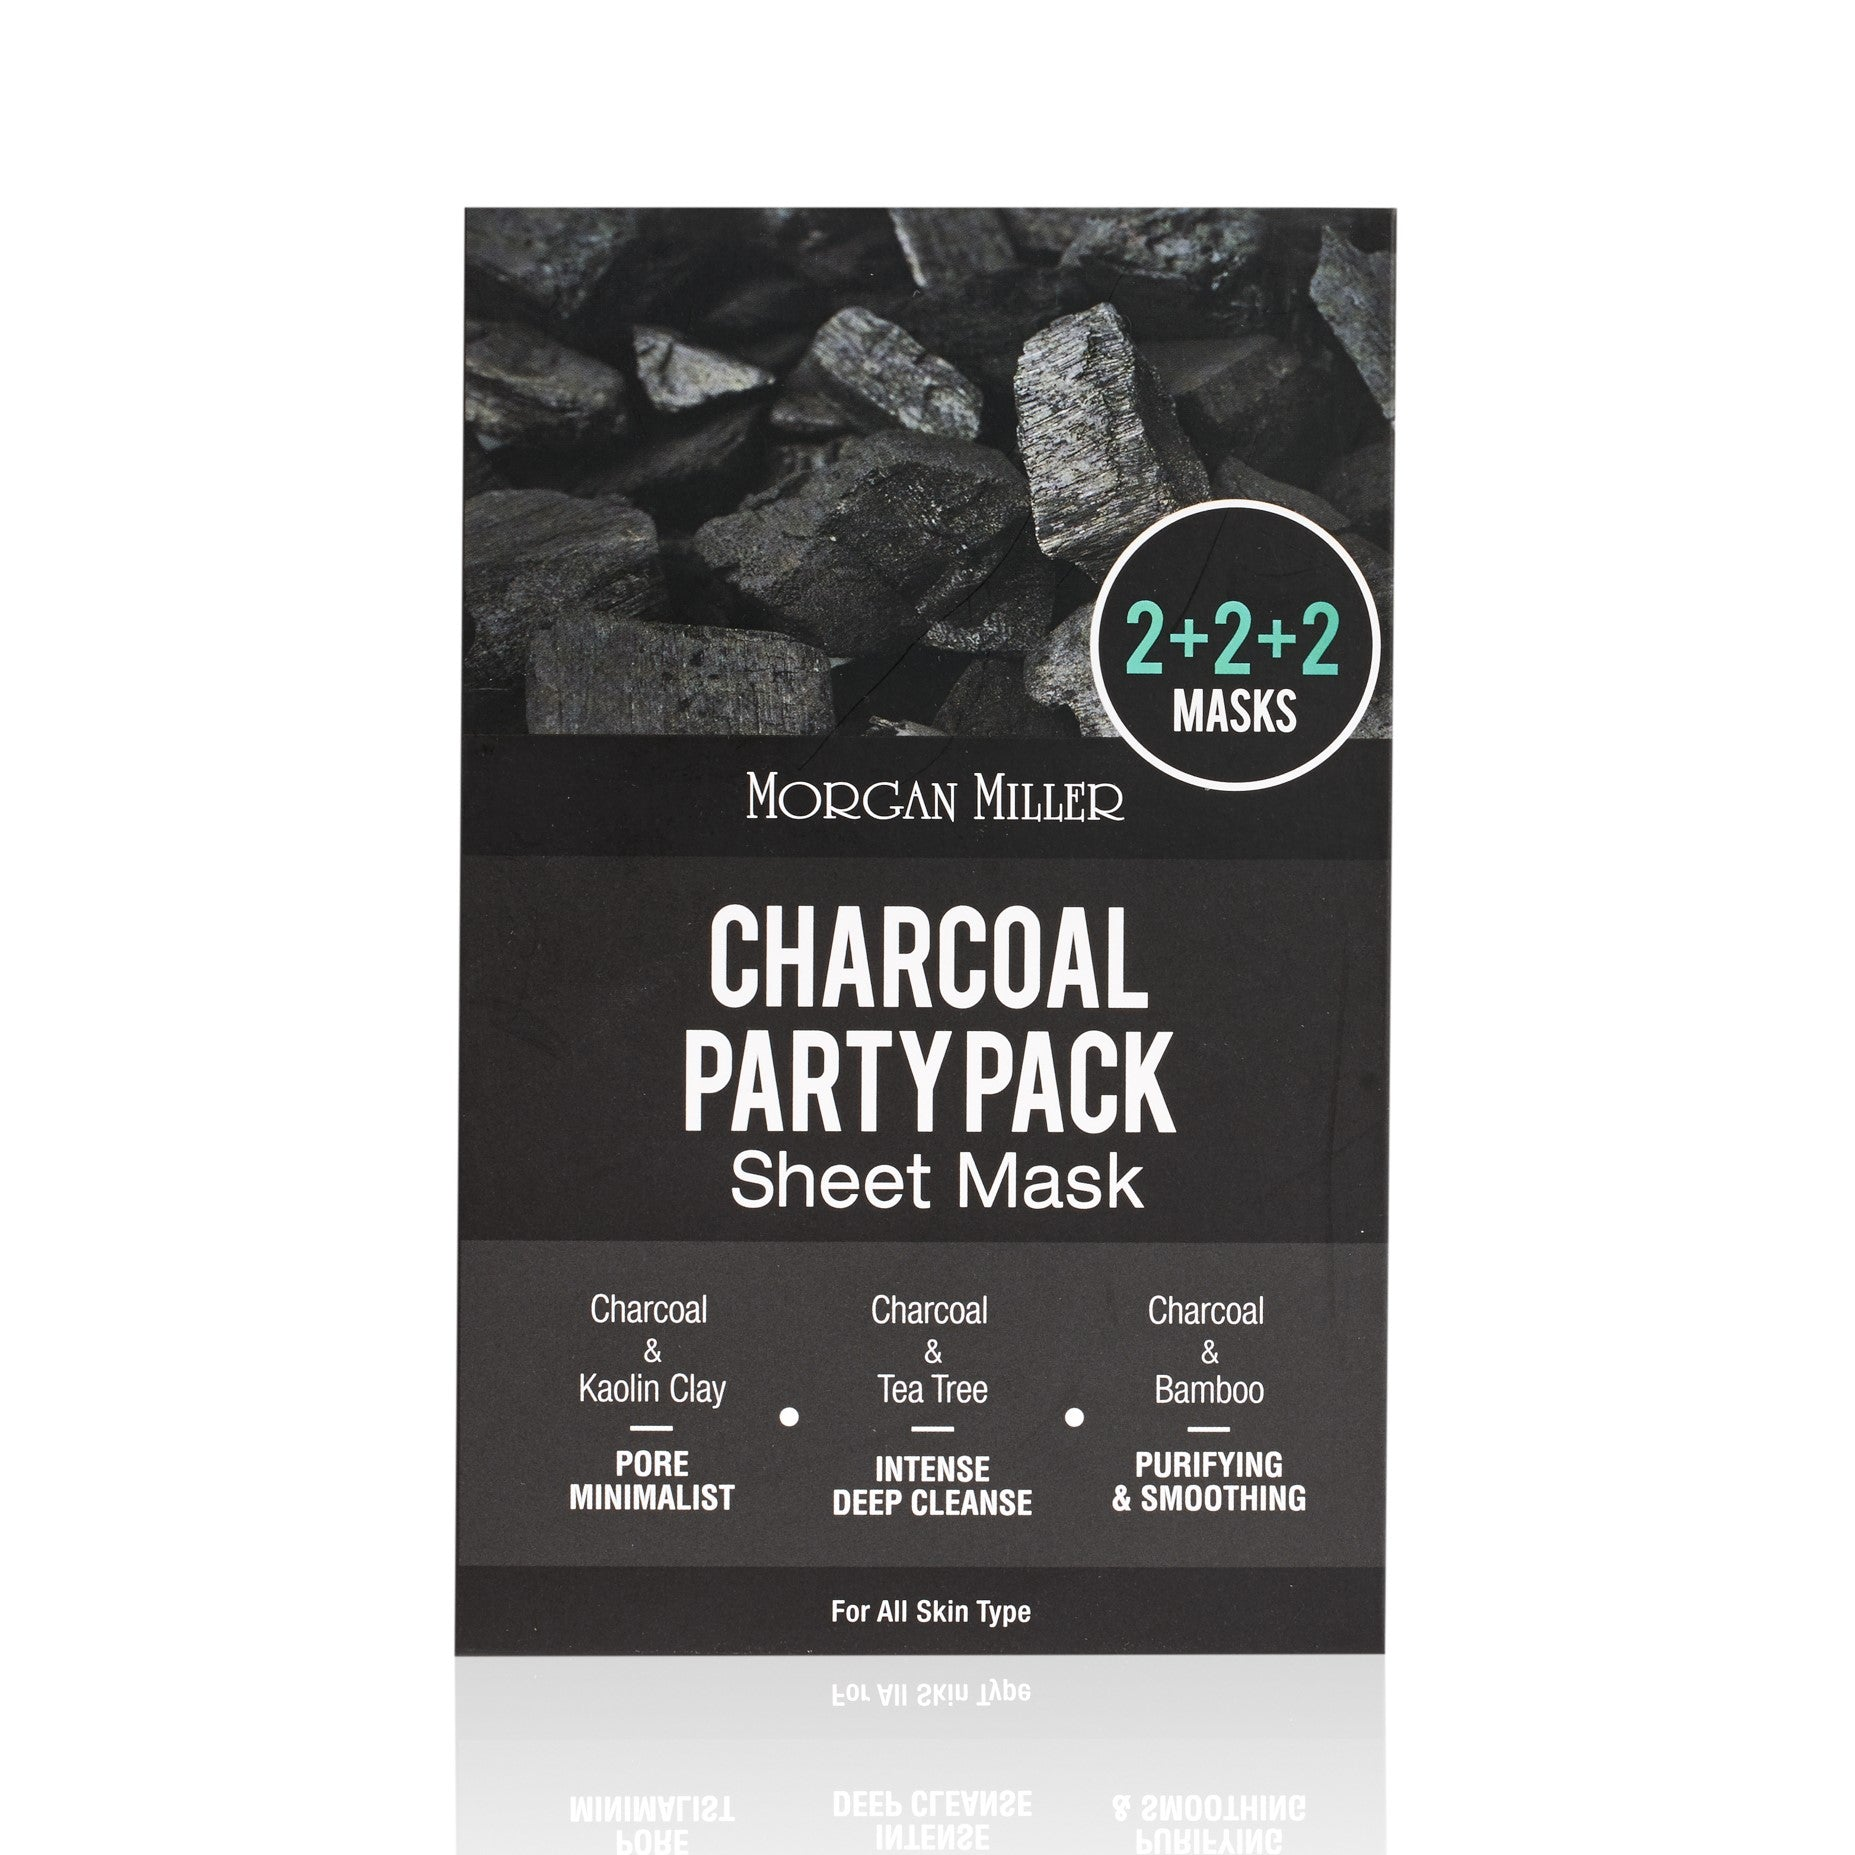 Morgan Miller Charcoal Party Pack Sheet Mask packaging